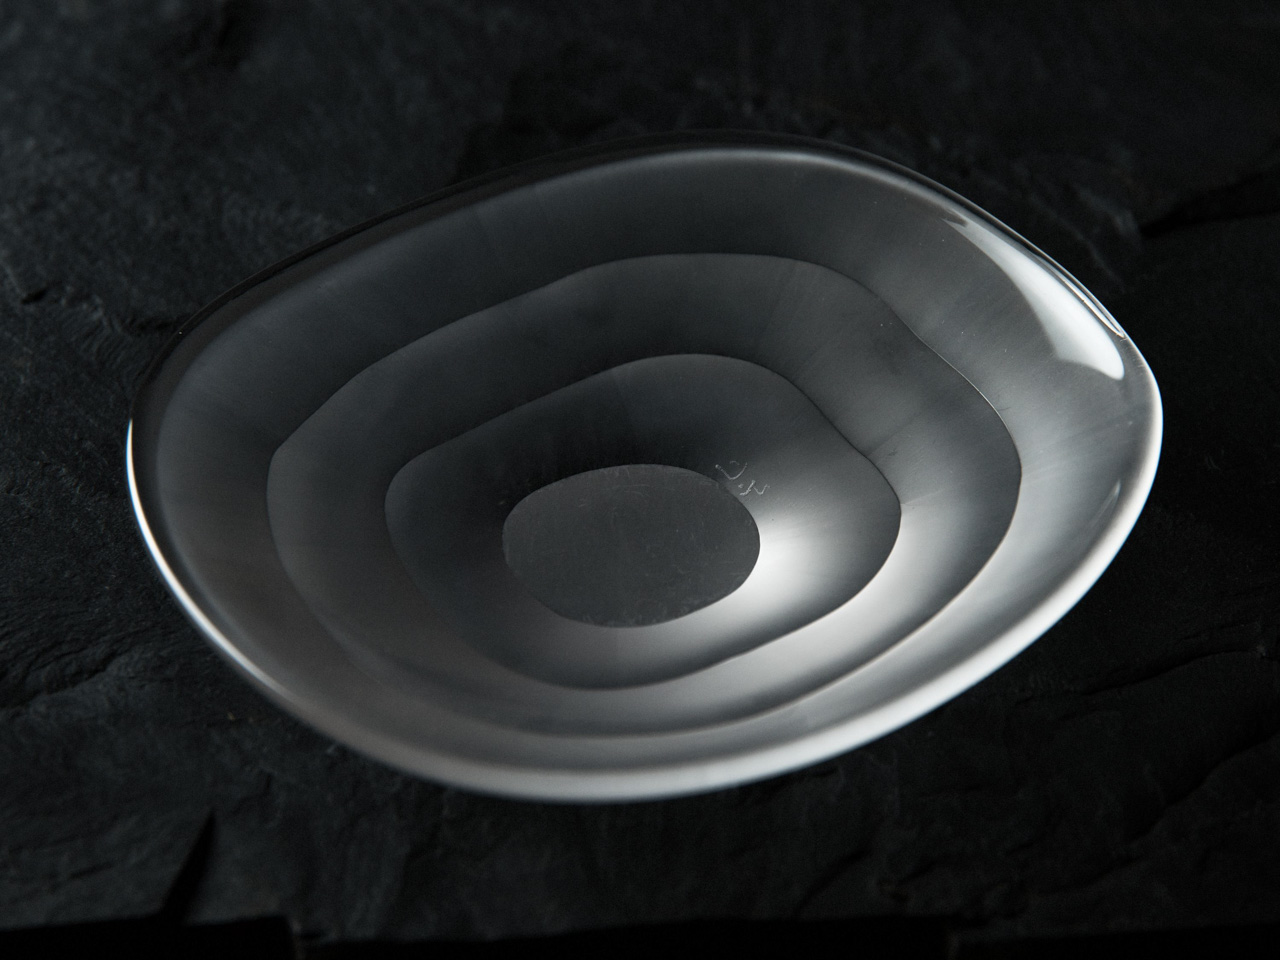 Yutaro Kijima's Glass Work - dish